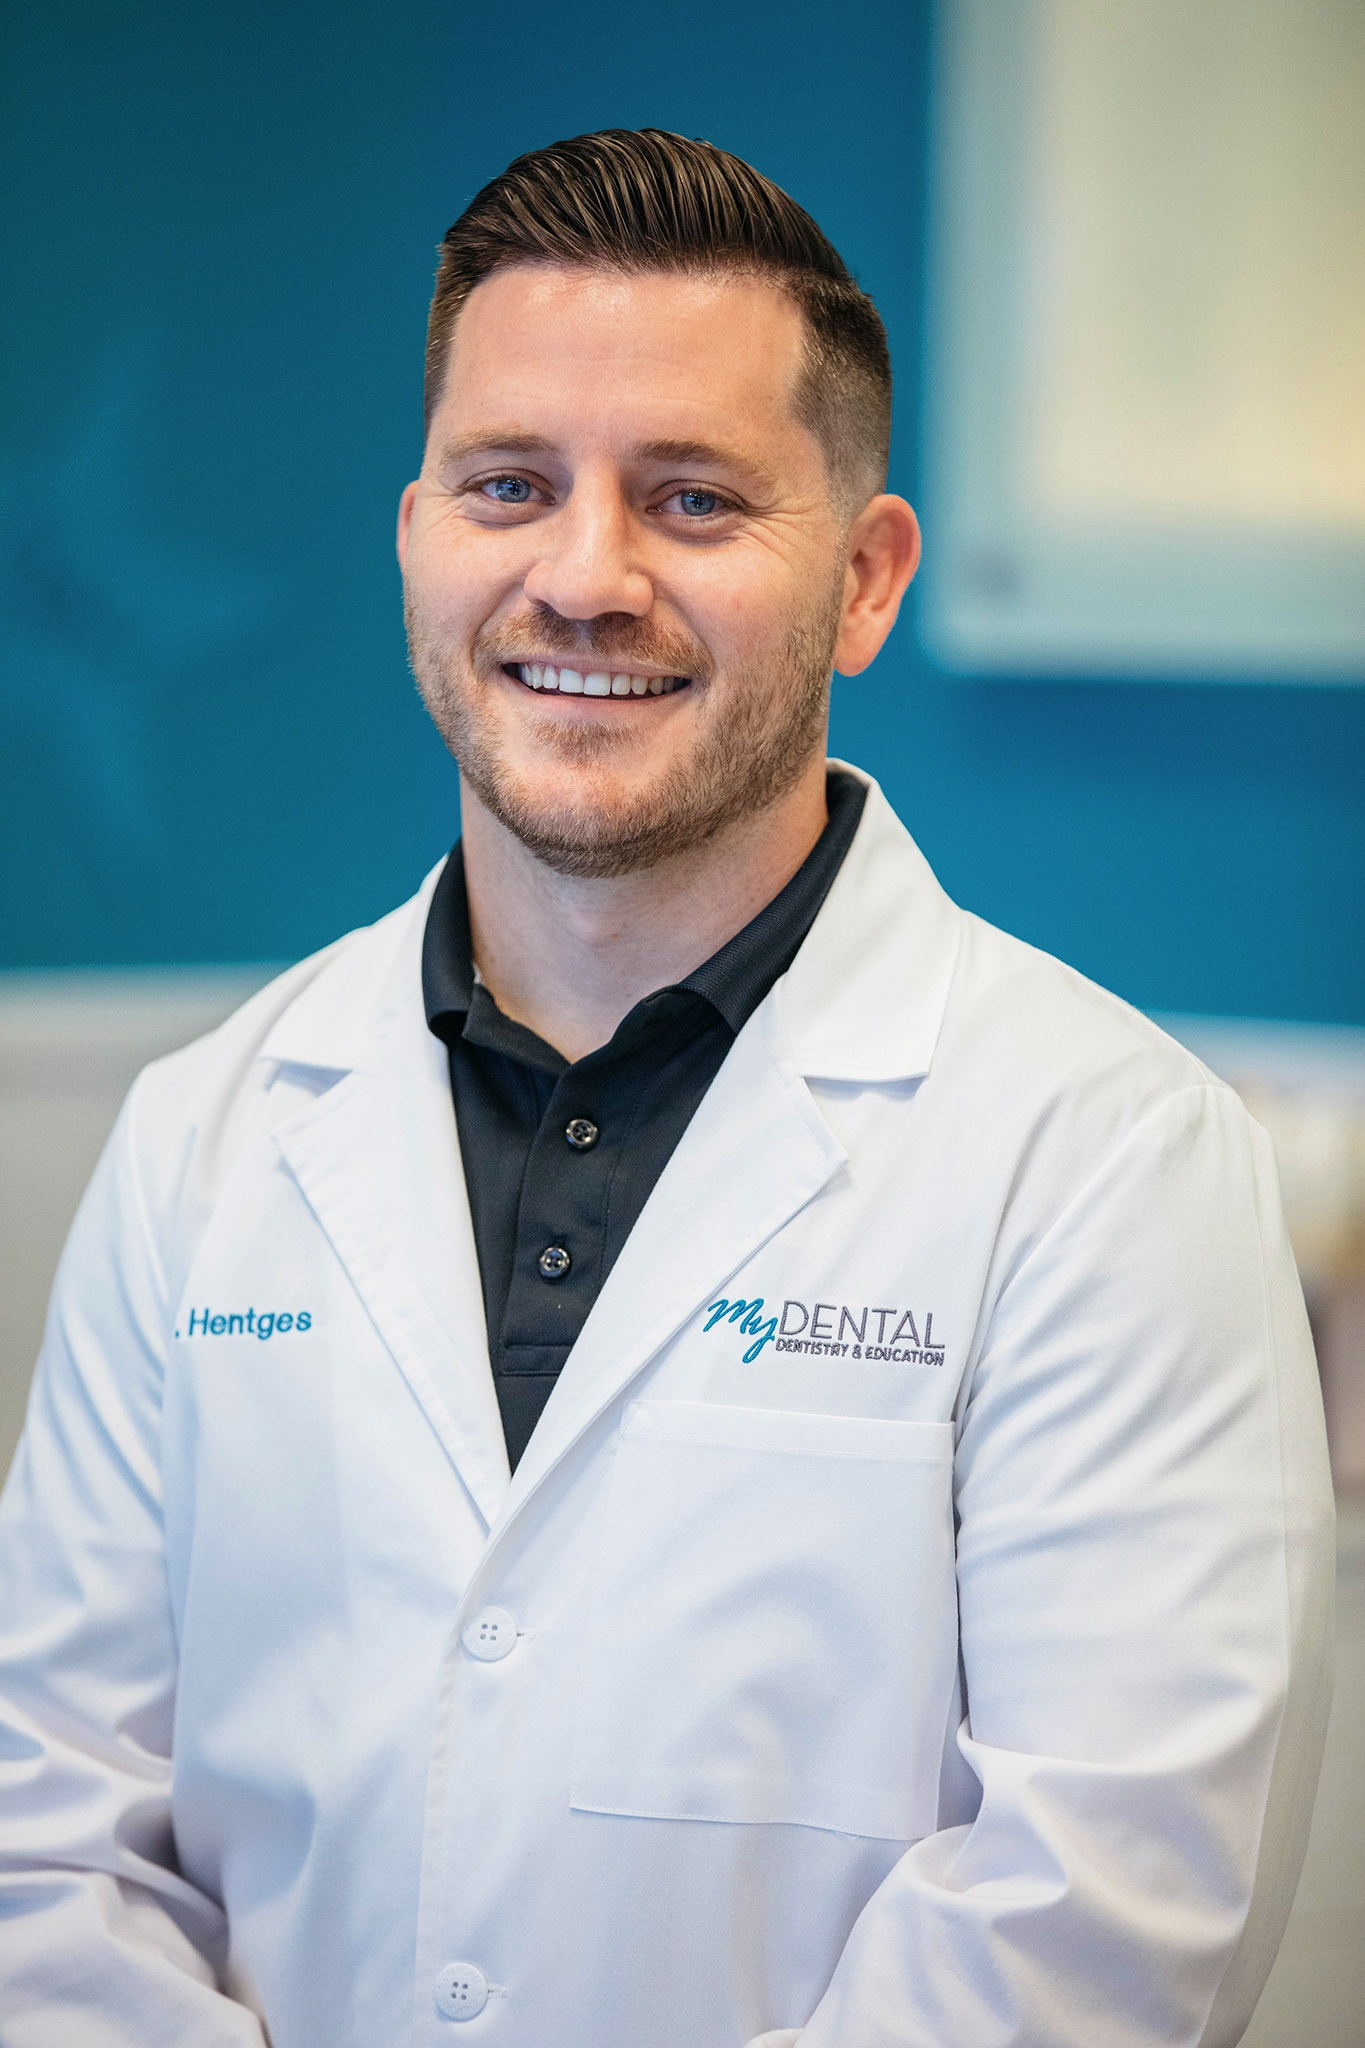 Dr. Zack Hentges of My Dental Dentistry & Education